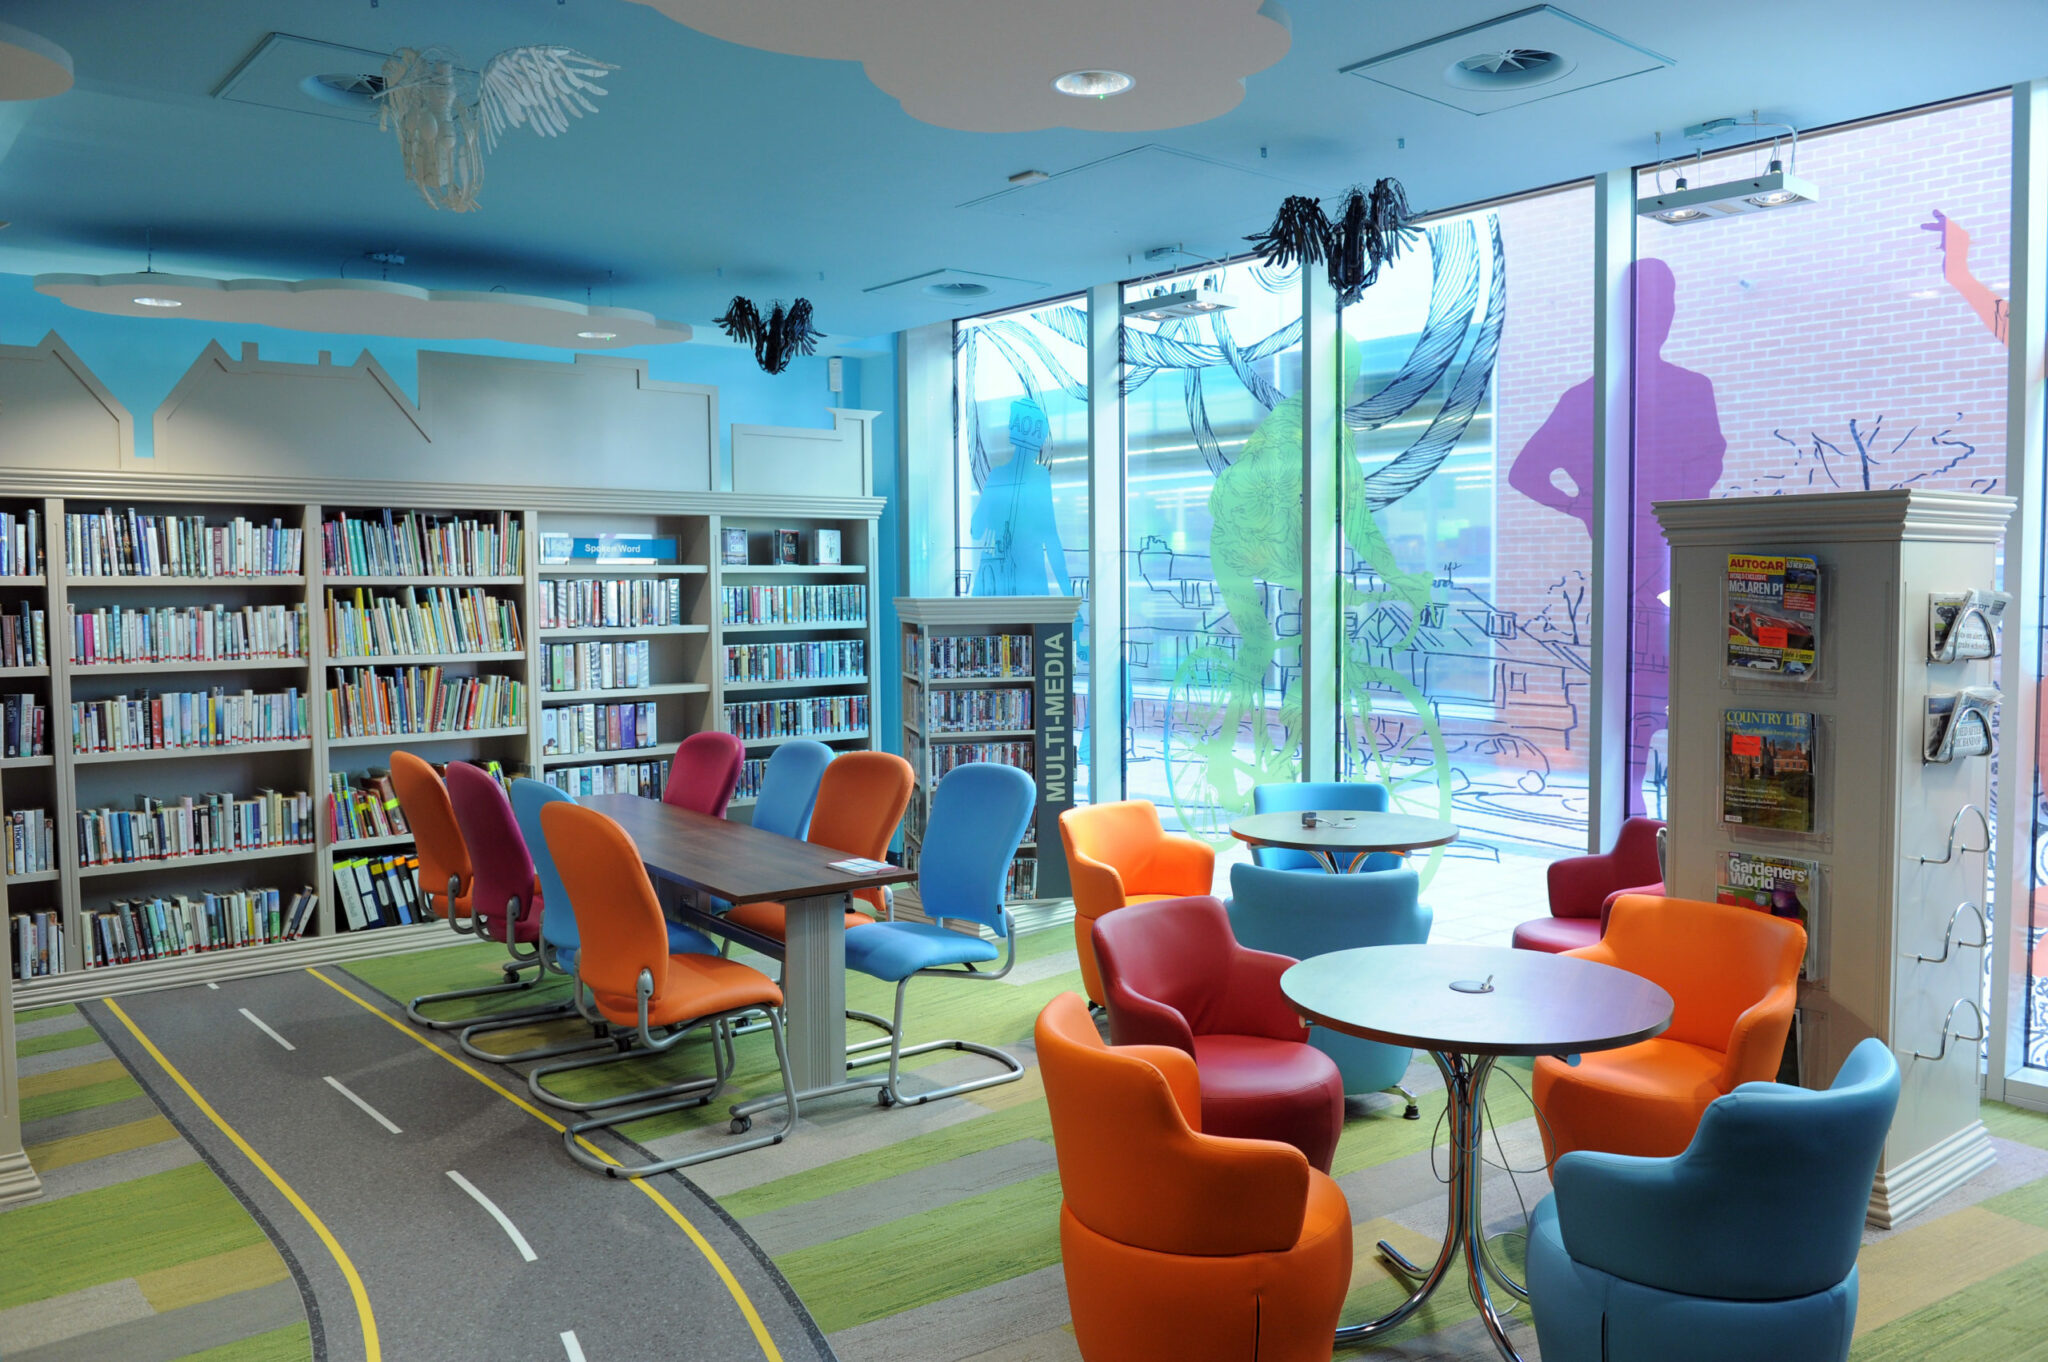 Shirley library 1